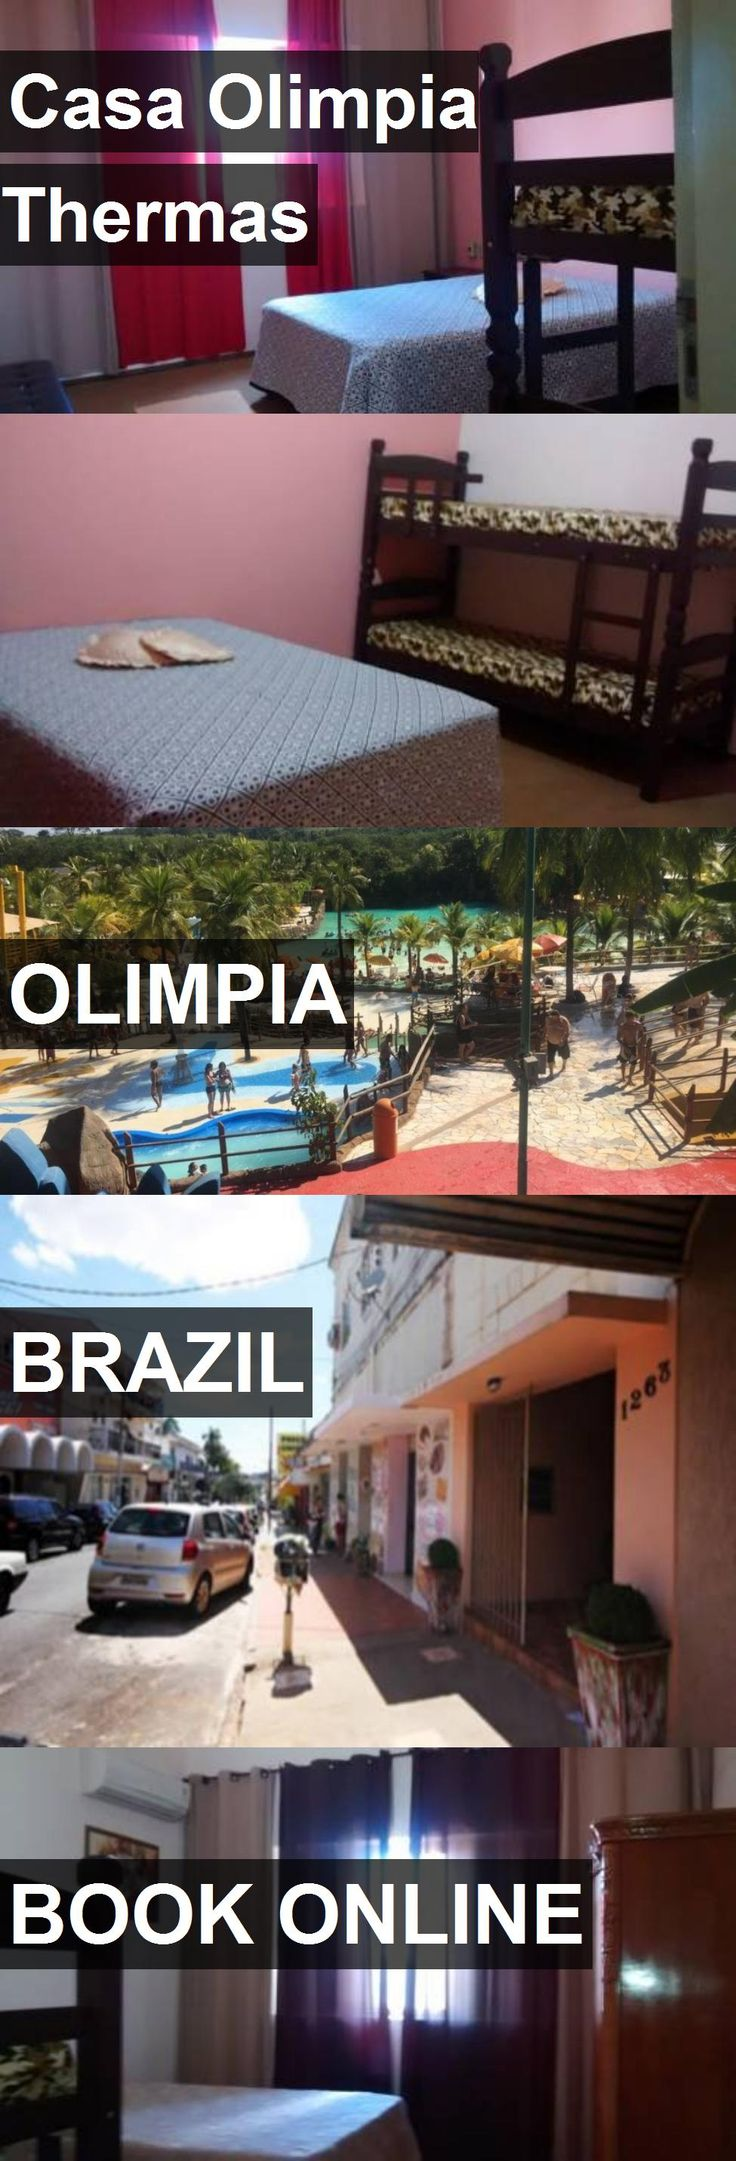 Hotel Casa Olimpia Thermas in Olimpia, Brazil. For more information, photos, reviews and best prices please follow the link. #Brazil #Olimpia #travel #vacation #hotel